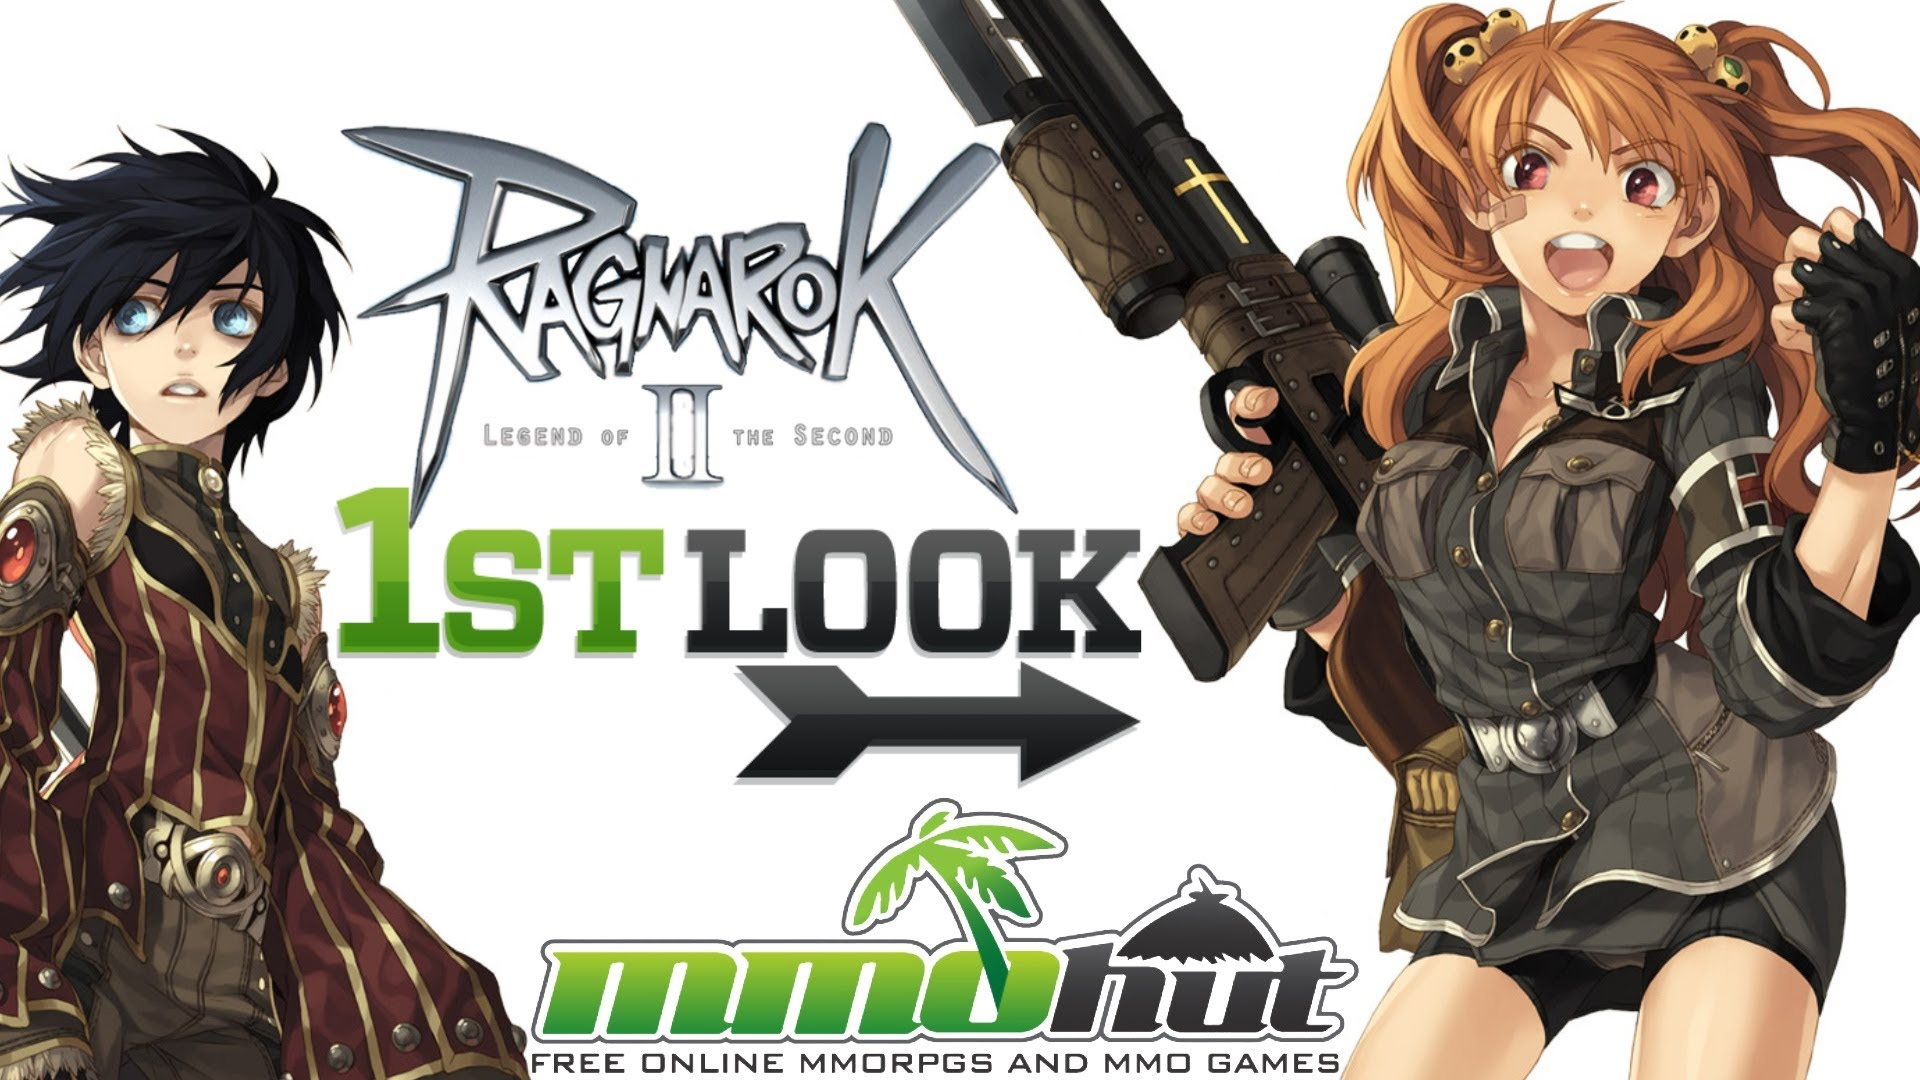 Ragnarok Online 2 - First Look Video Thumbnail